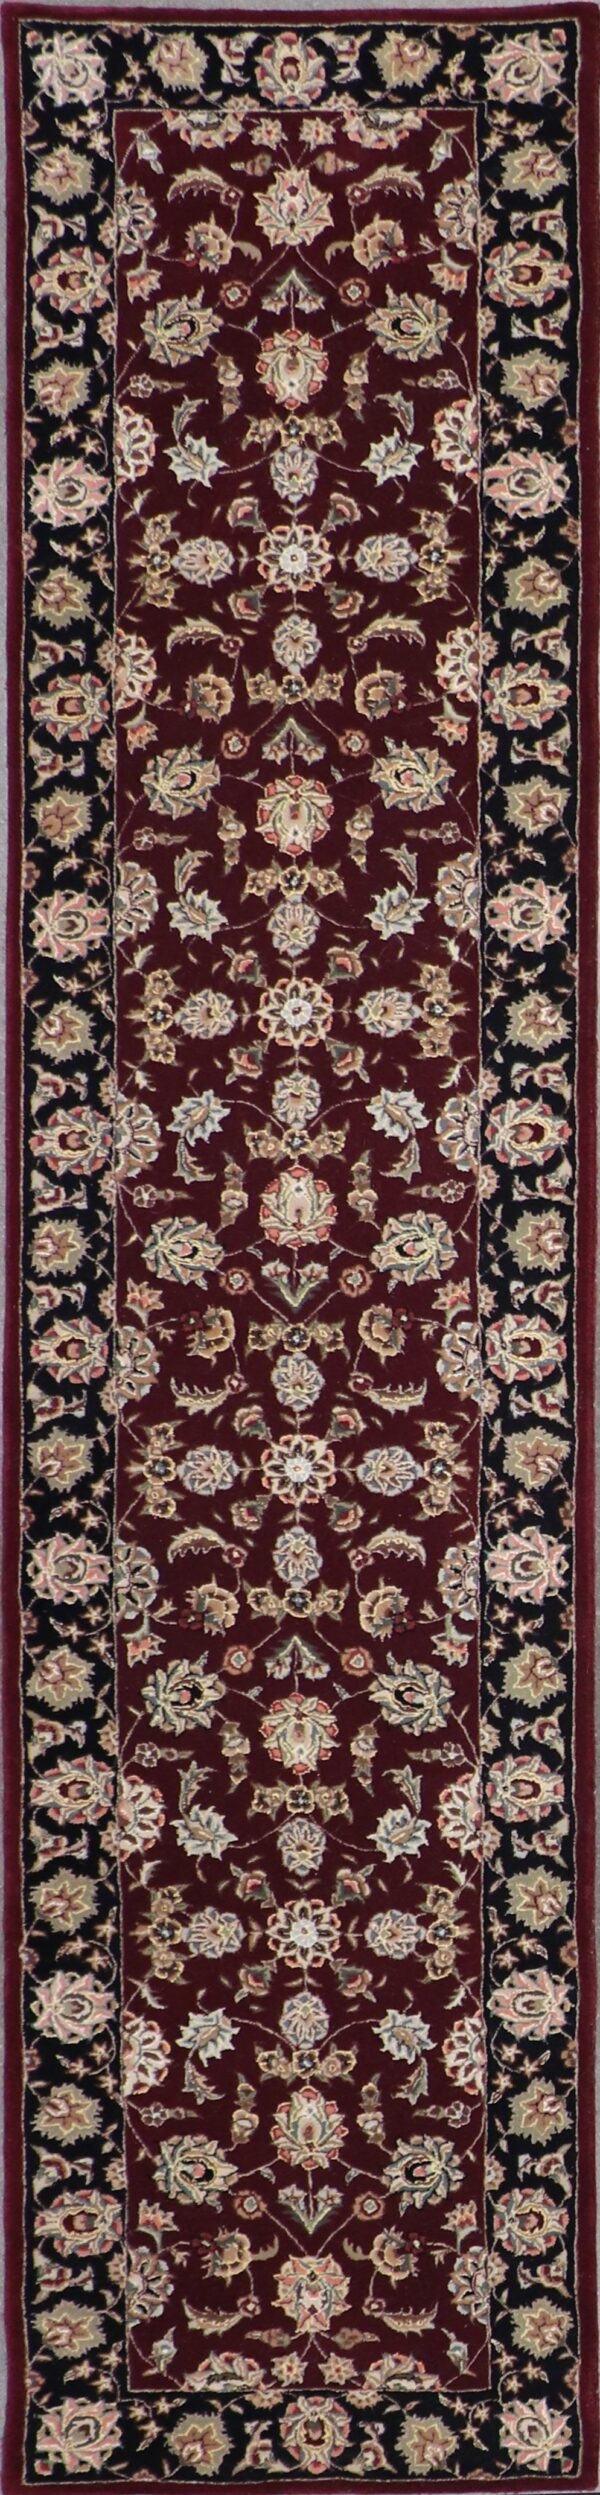 """2'7""""x11'9"""" Decorative Wool & Silk Hand-Tufted Rug - Direct Rug Import 